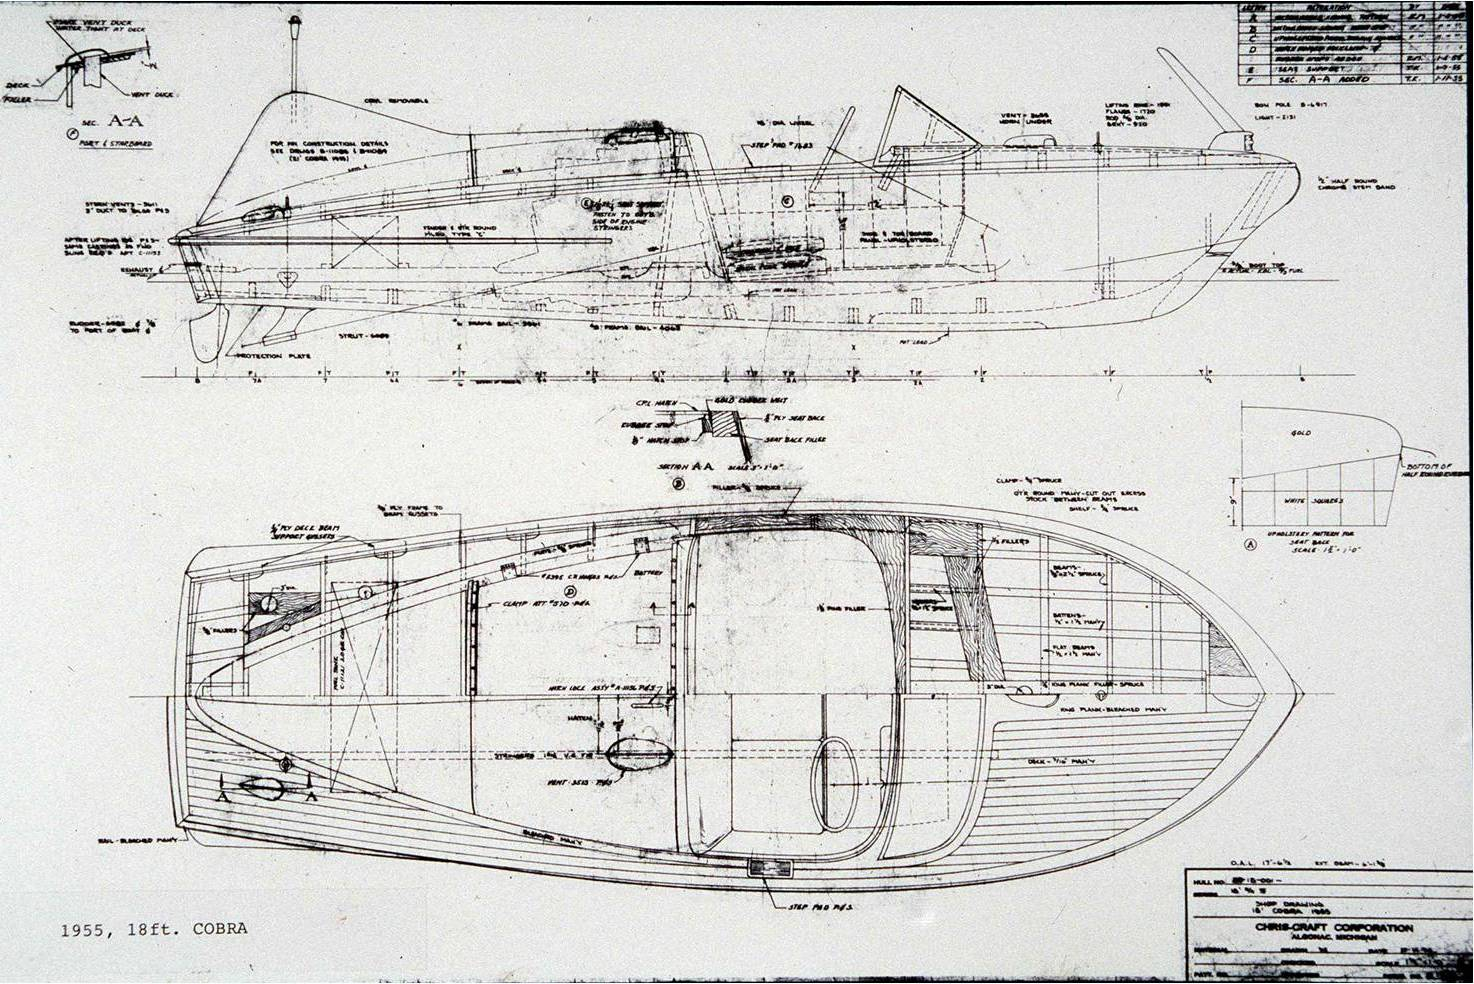 Chris craft model boat plans - Chris Craft Model Boat Plans Chris Craft Model Boat Plans Chris Craft Wooden Boat Models